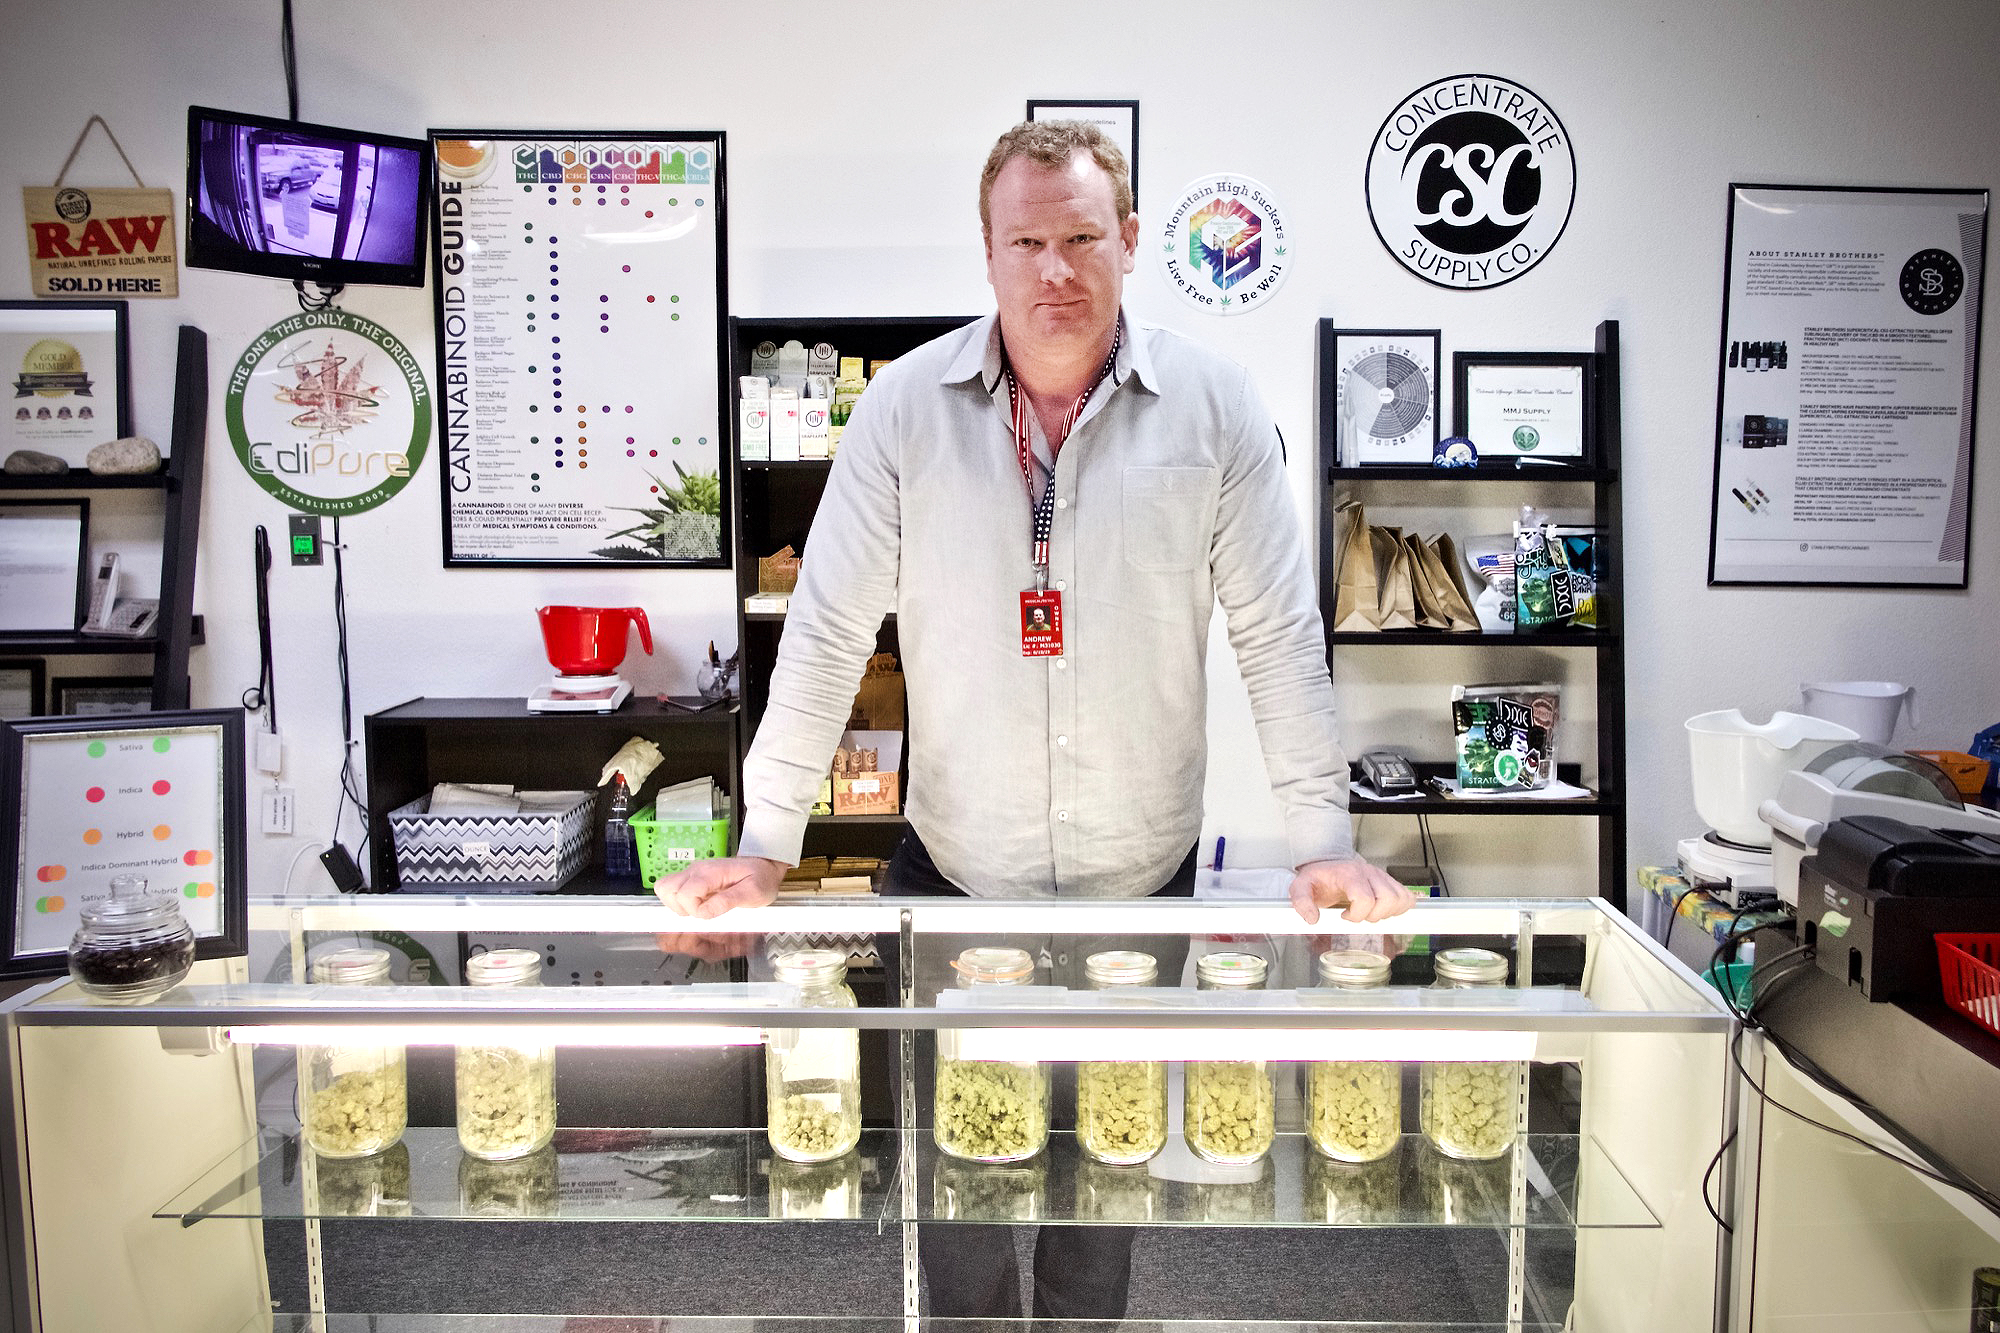 Andrew Heaton runs the medical marijuana dispensary WTJ MMJ Supply in Colorado Springs. He said he believes legal recreational marijuana in the city could actually deter active duty soldiers from using pot.